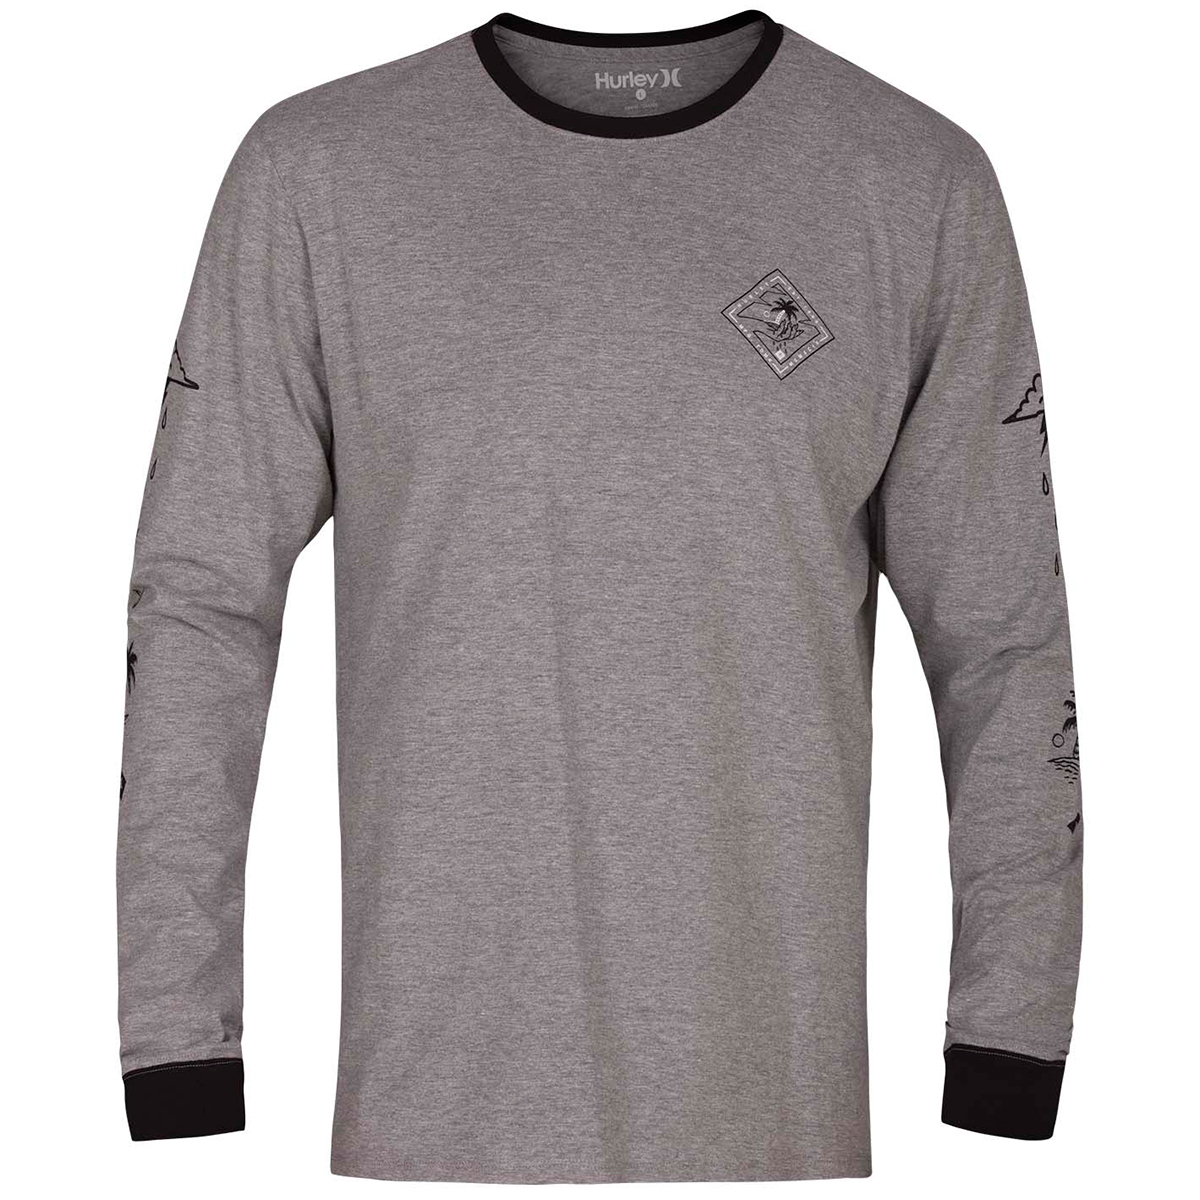 Hurley Guys' Palm Reader Long-Sleeve Tee - Black, L